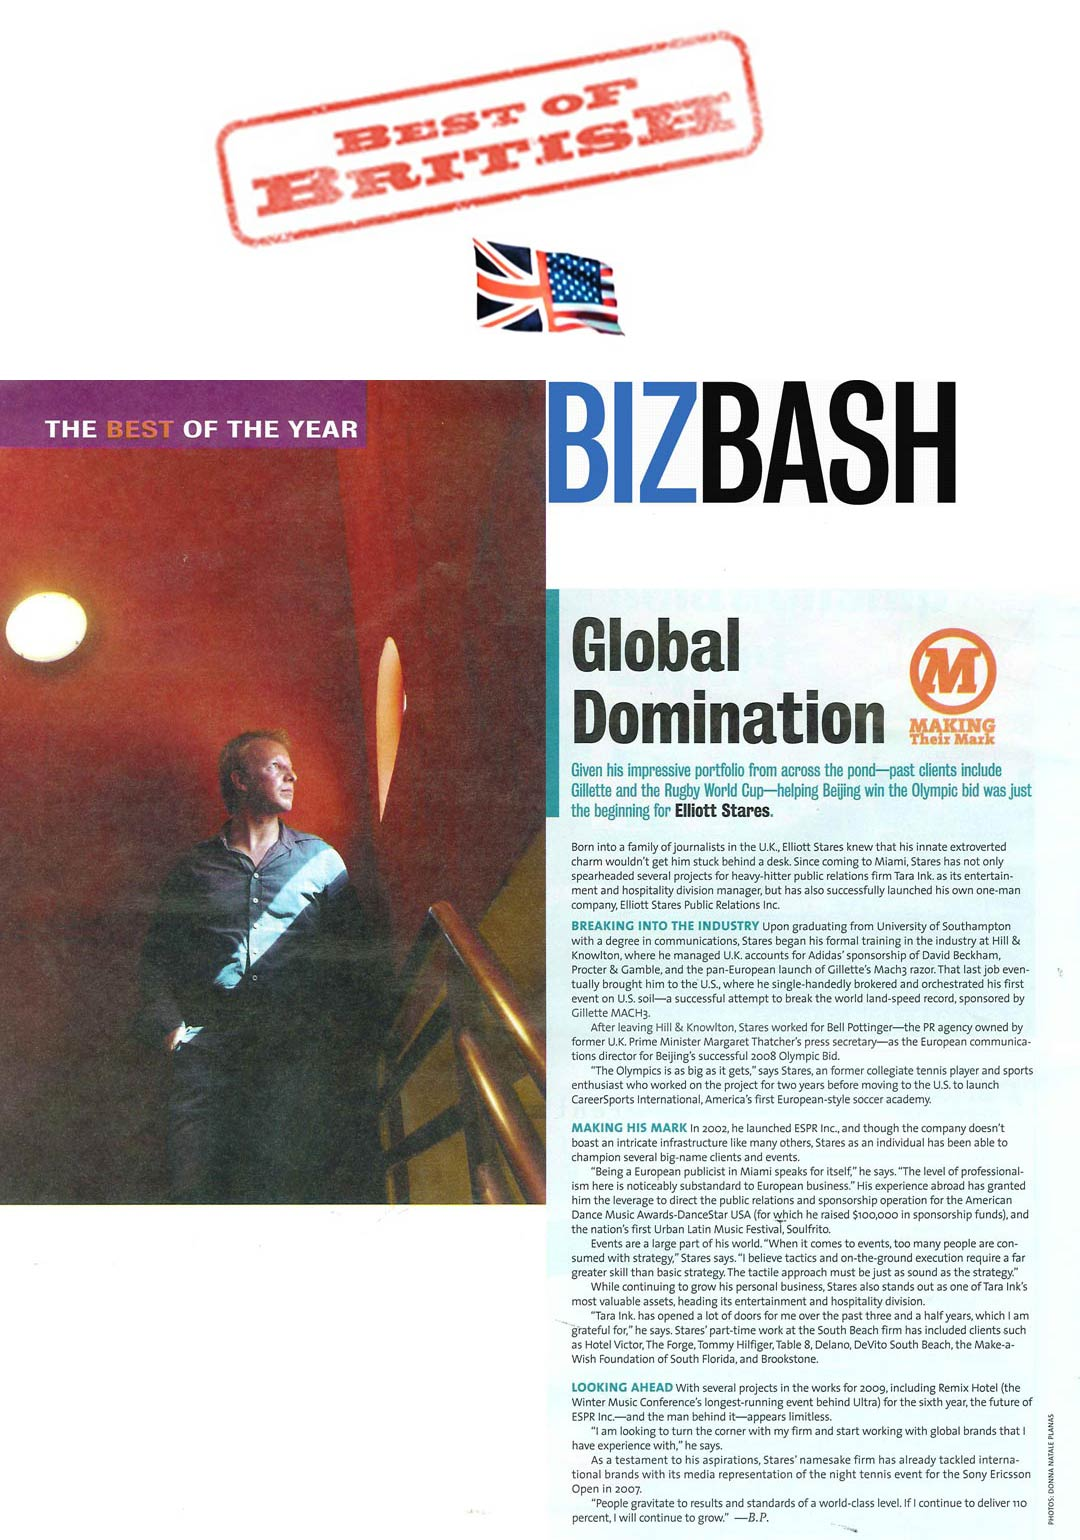 biz bash article